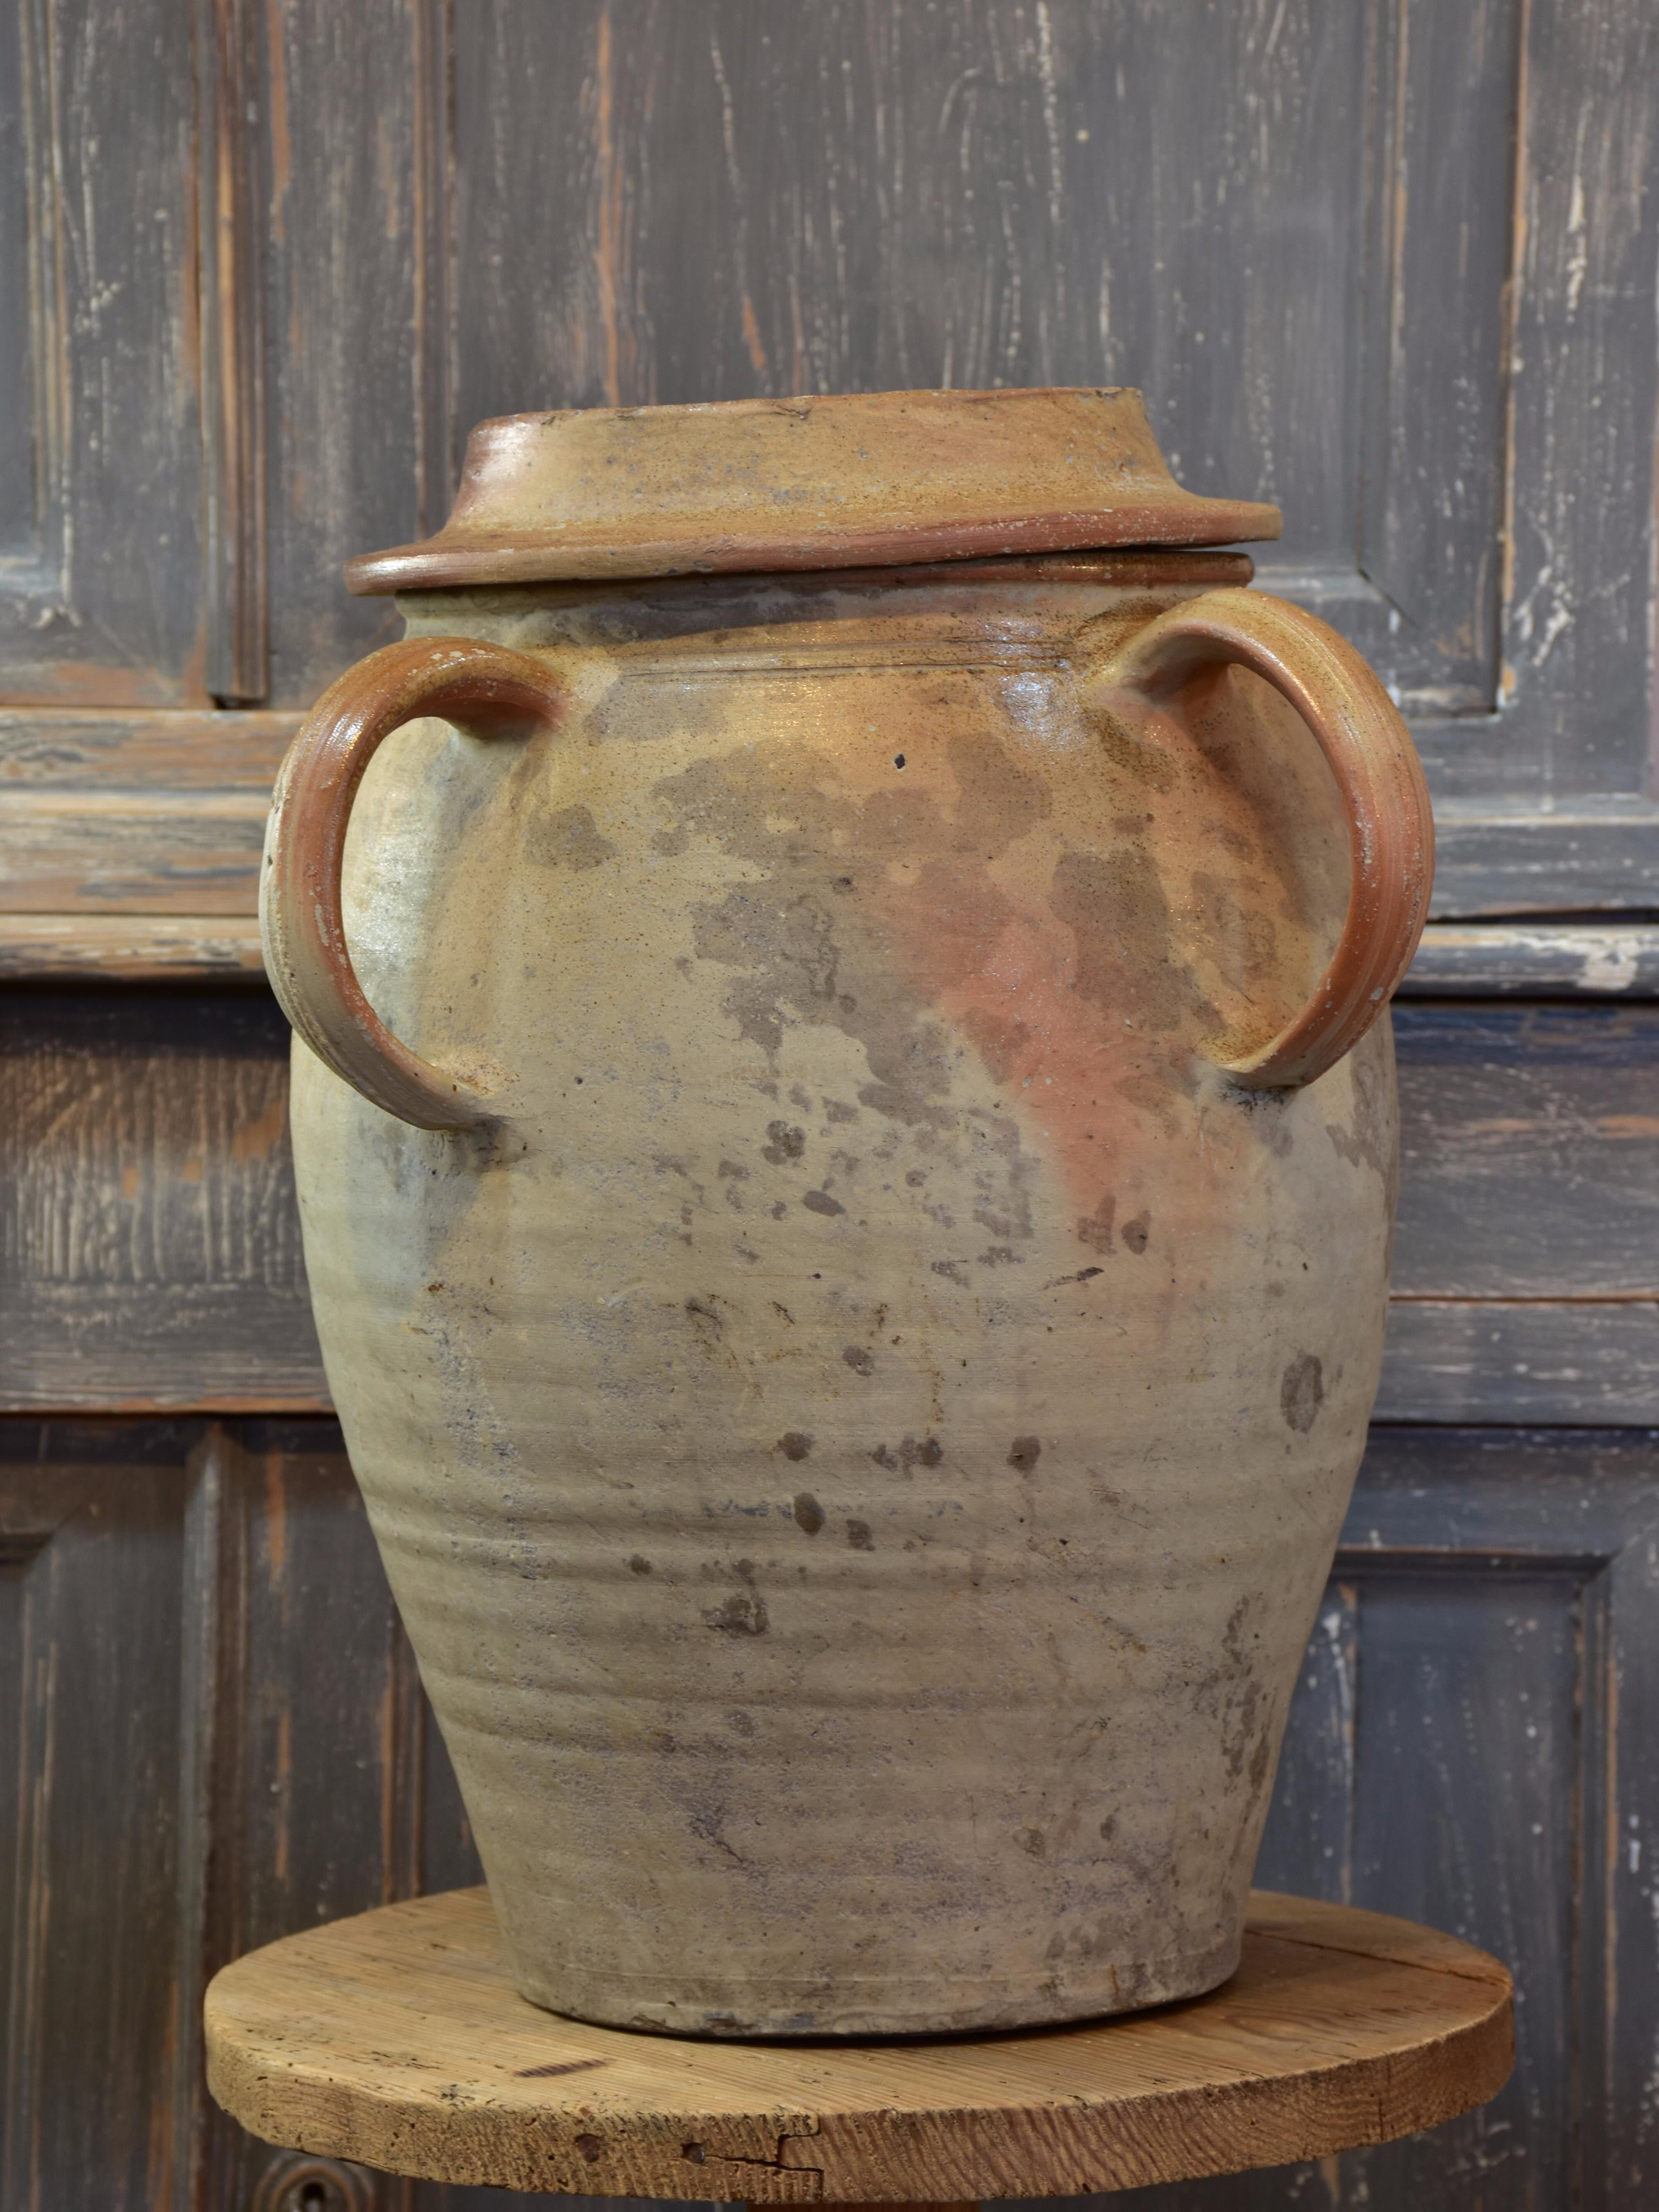 Antique French earthenware pot with lid – early 1900's